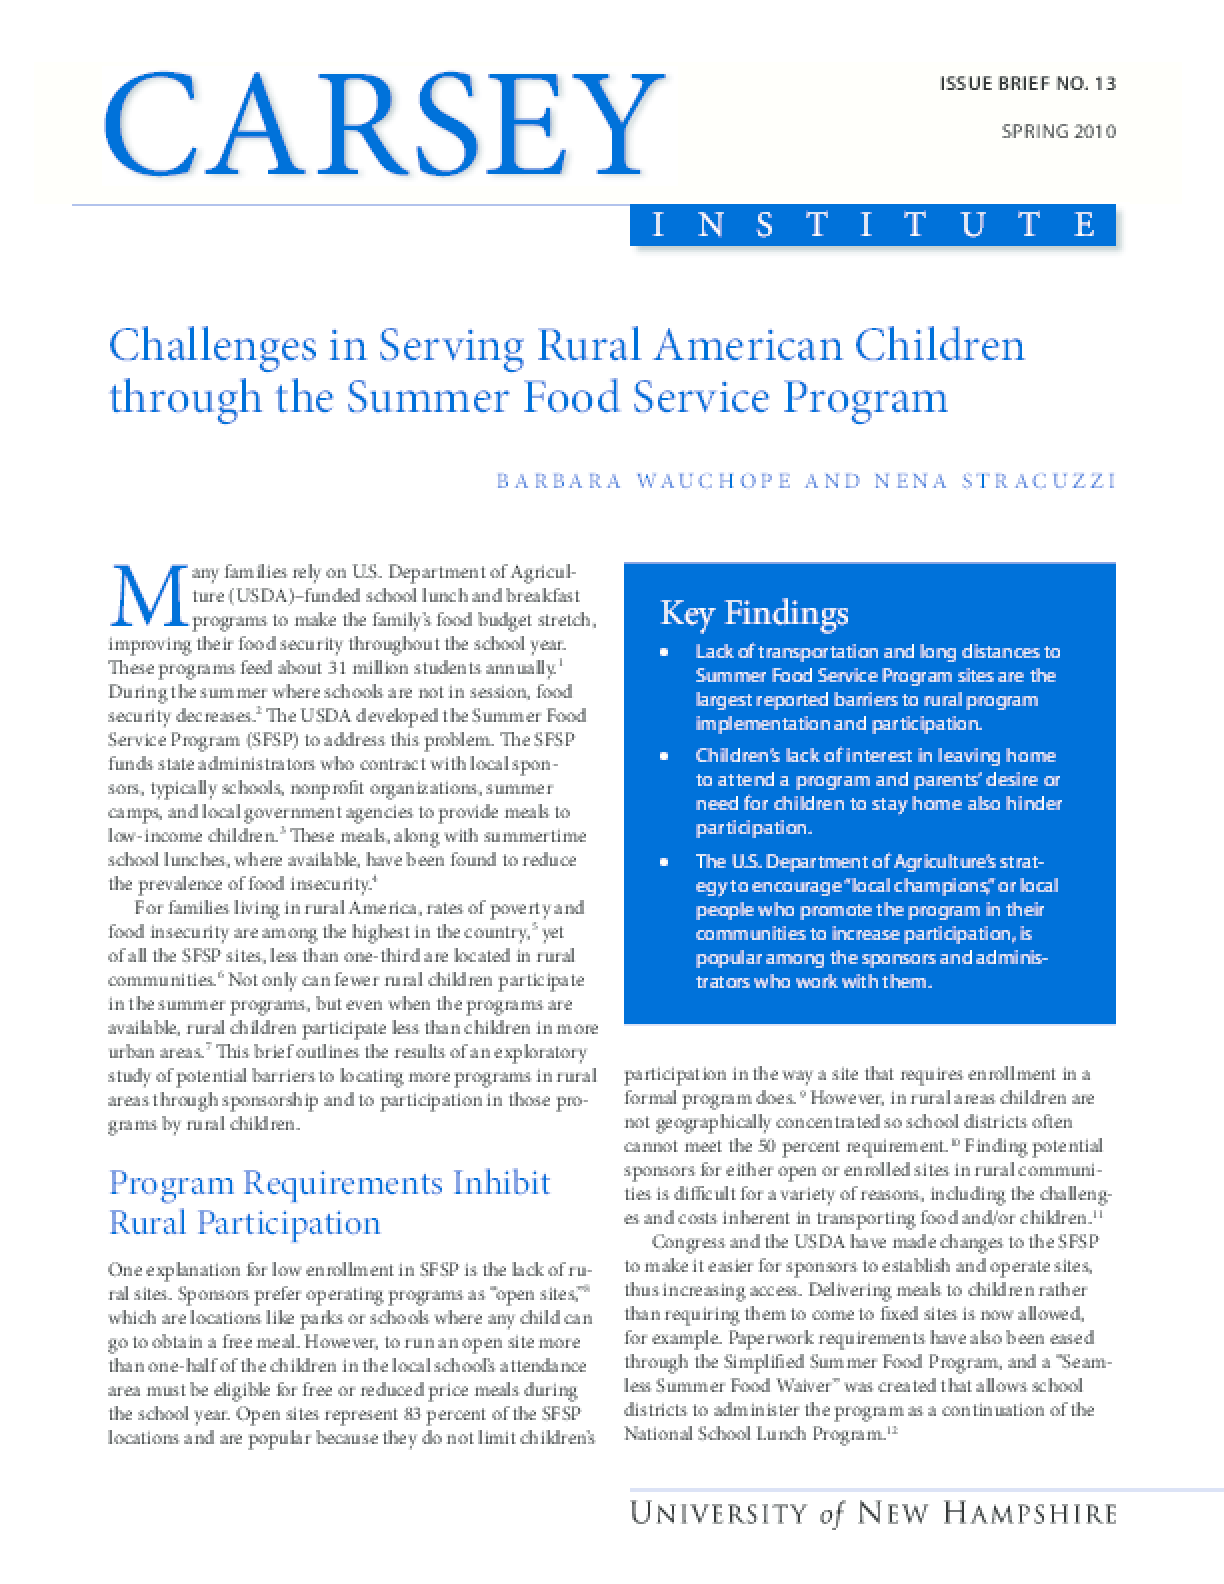 Challenges in Serving Rural American Children Through the Summer Food Service Program